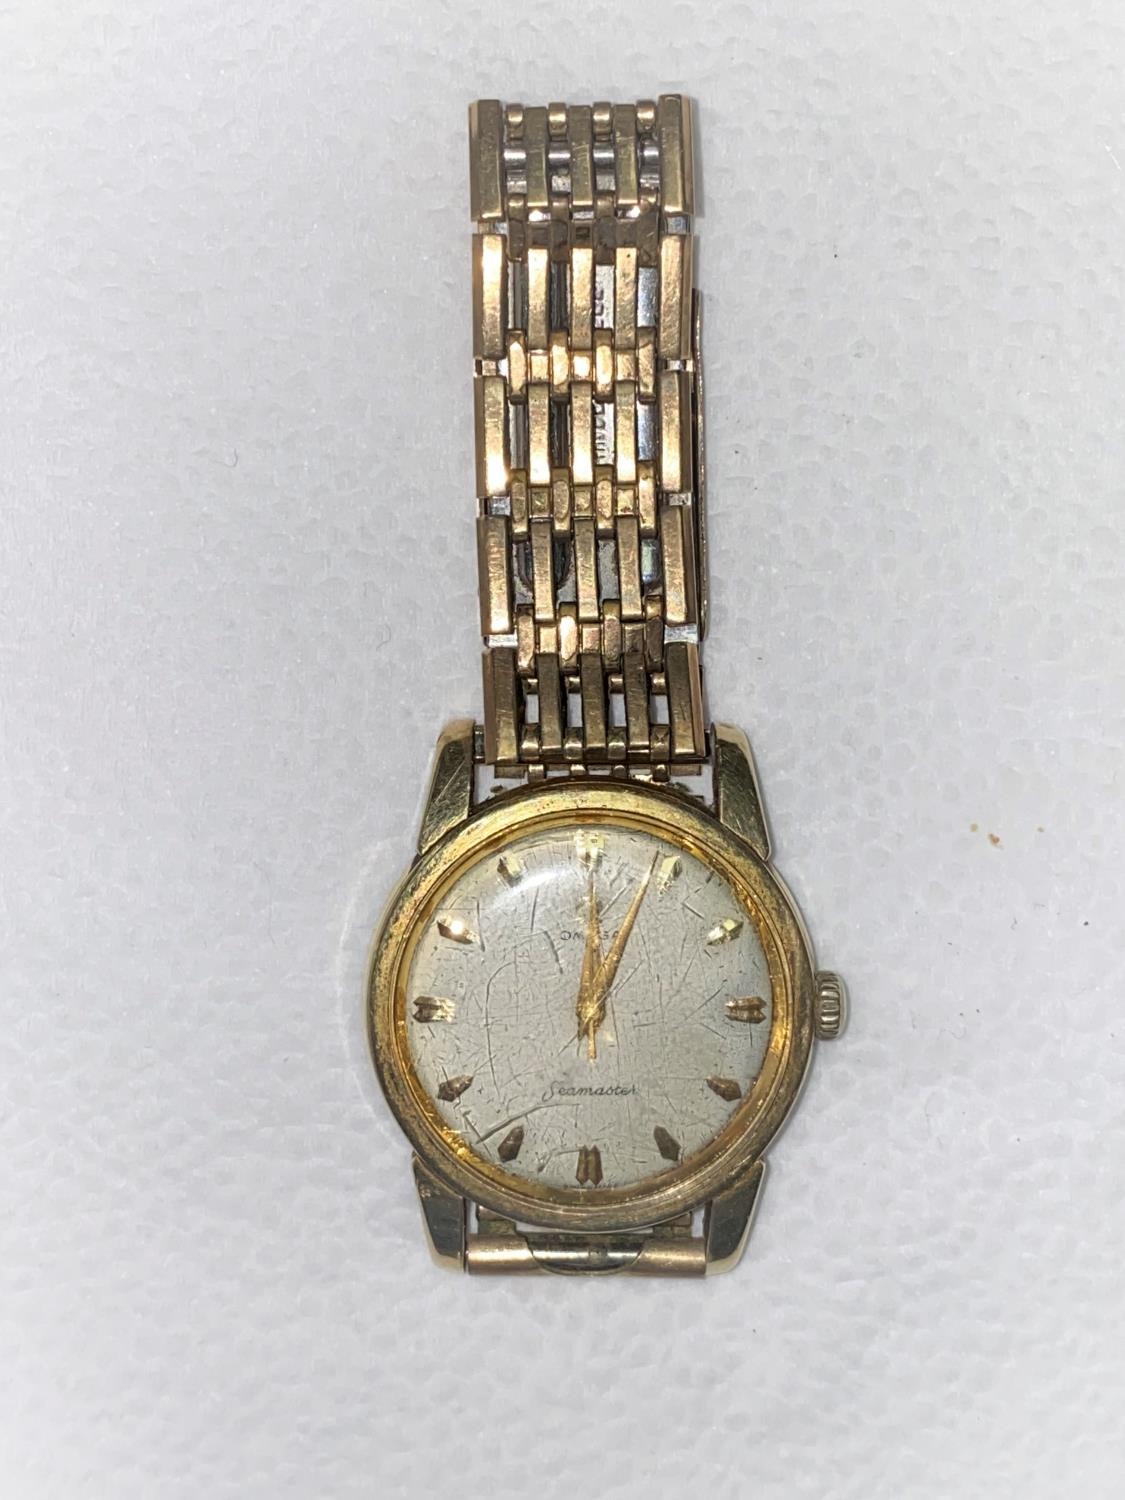 A vintage Omega Seamaster 17 jewel wristwatch with baton numerals and center seconds hand, no - Image 4 of 4